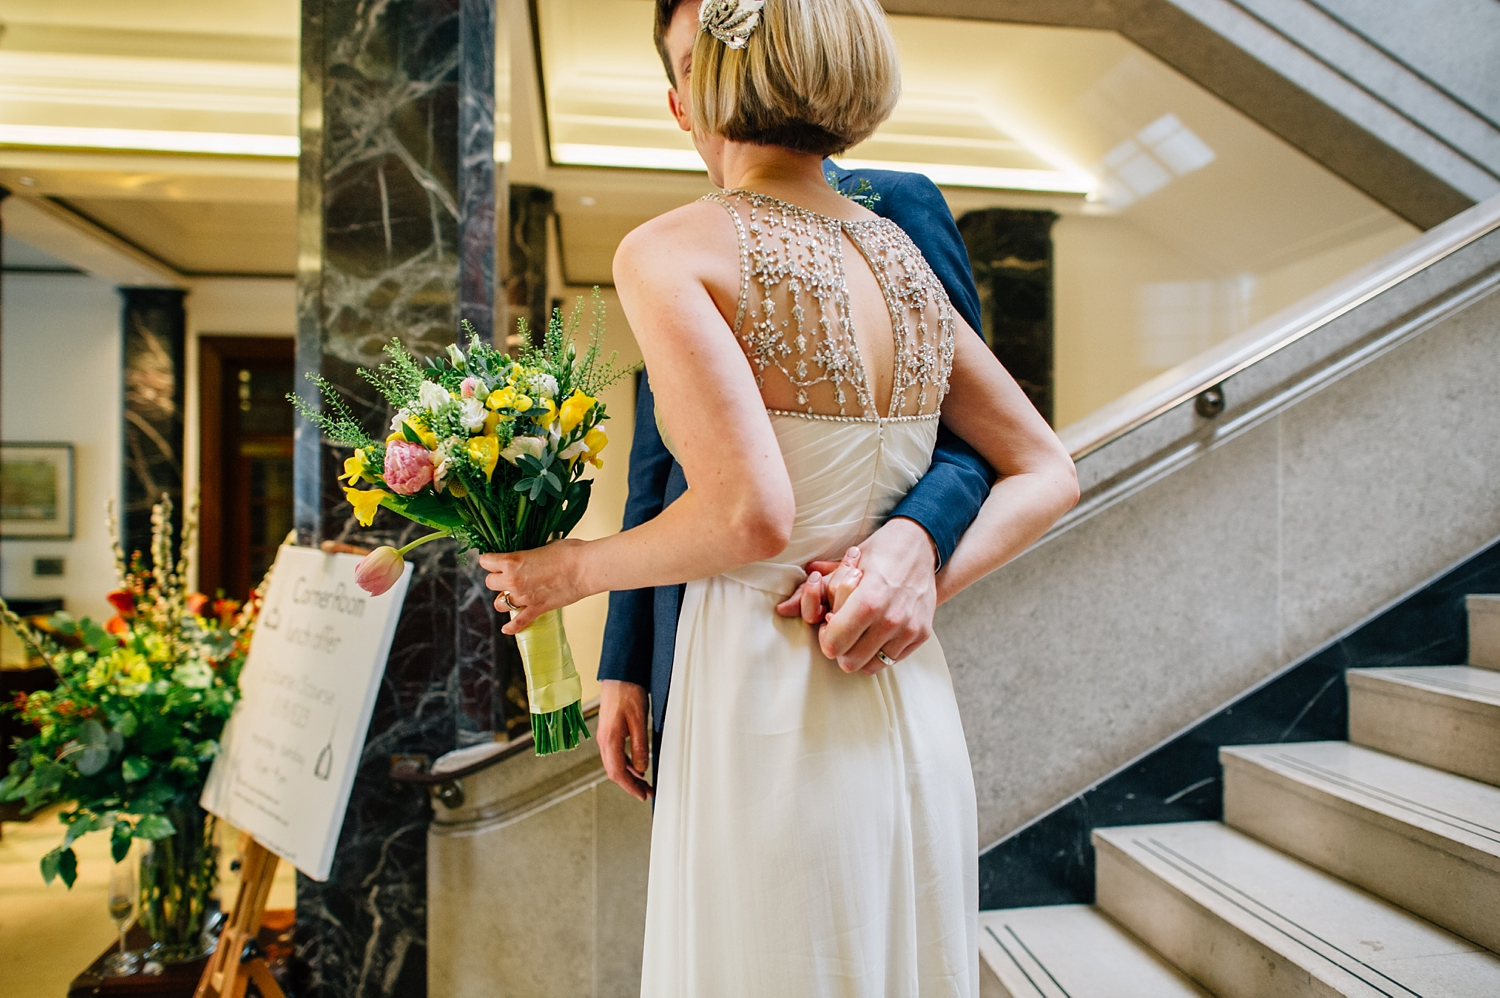 0069-lisa-devine-alternative-wedding-photography-london-hackney-dalston-london-photography-townhall-hotel.JPG